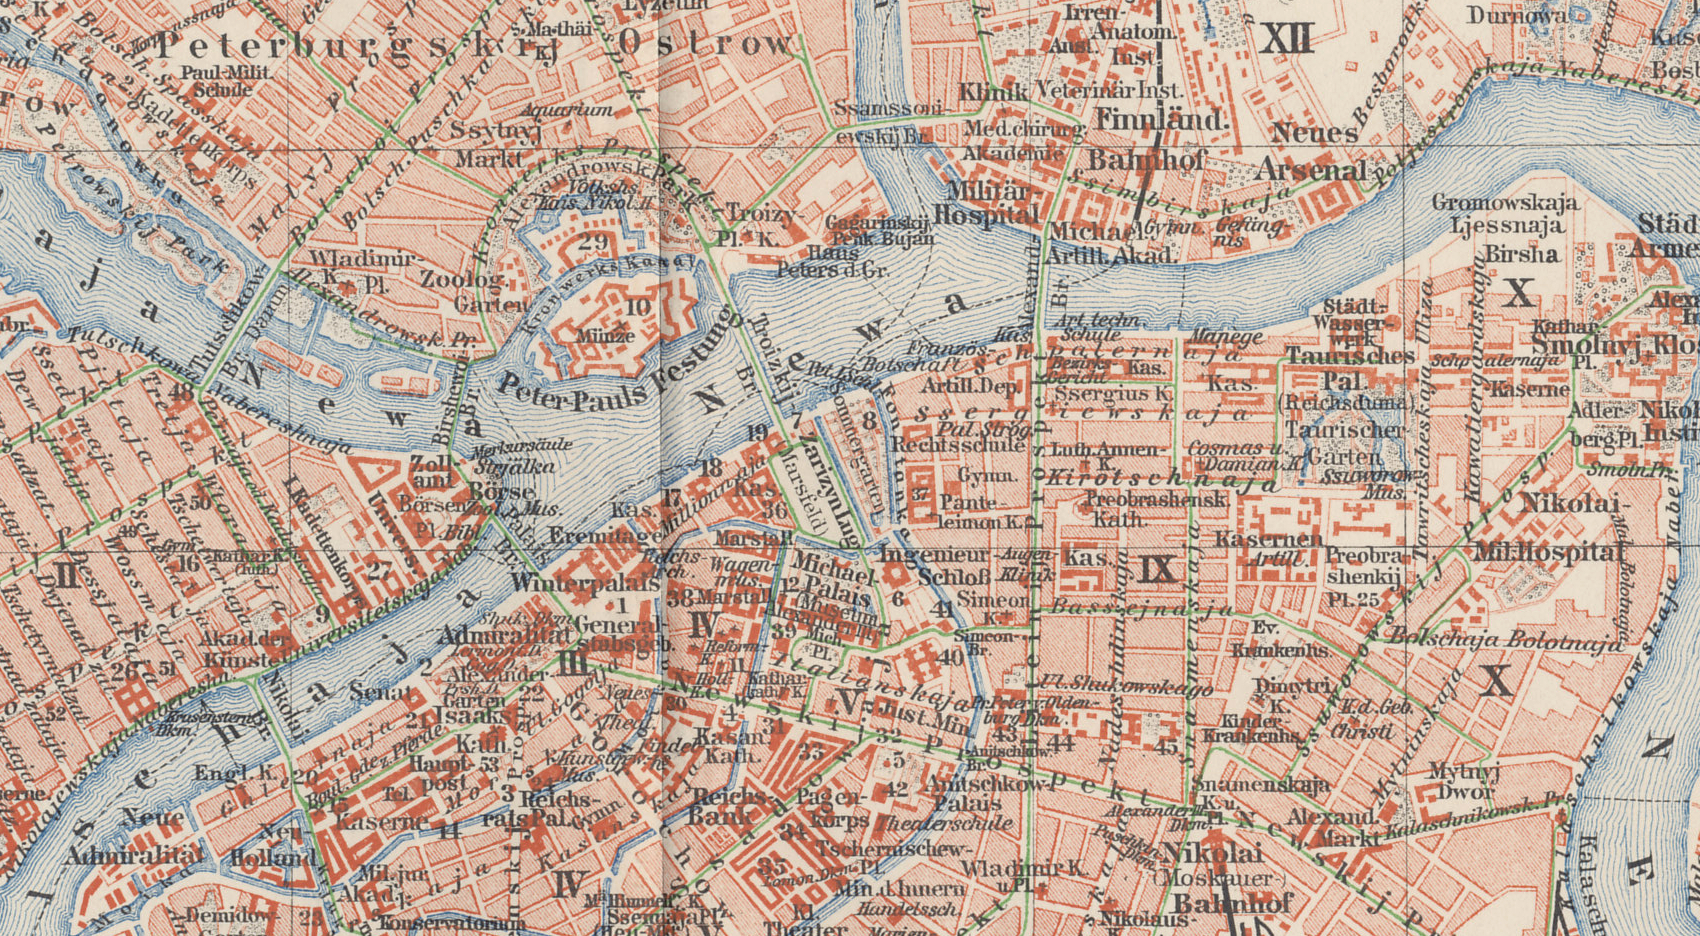 Central detail from a 1898 map of St. Petersburg, the Russian capital, from a German atlas. Central St Petersburg, or Petrograd, is on the Neva River. Key landmarks include the Peter and Paul Fortress, which served as a prison, Nevski Prospect, a primary boulevard south of the Fortress, the Finland Train Station, east of the Fortress, where Lenin made his triumphal return, the Tauride (Taurisches) Palace, which housed the Duma and later the Petrograd Soviet.